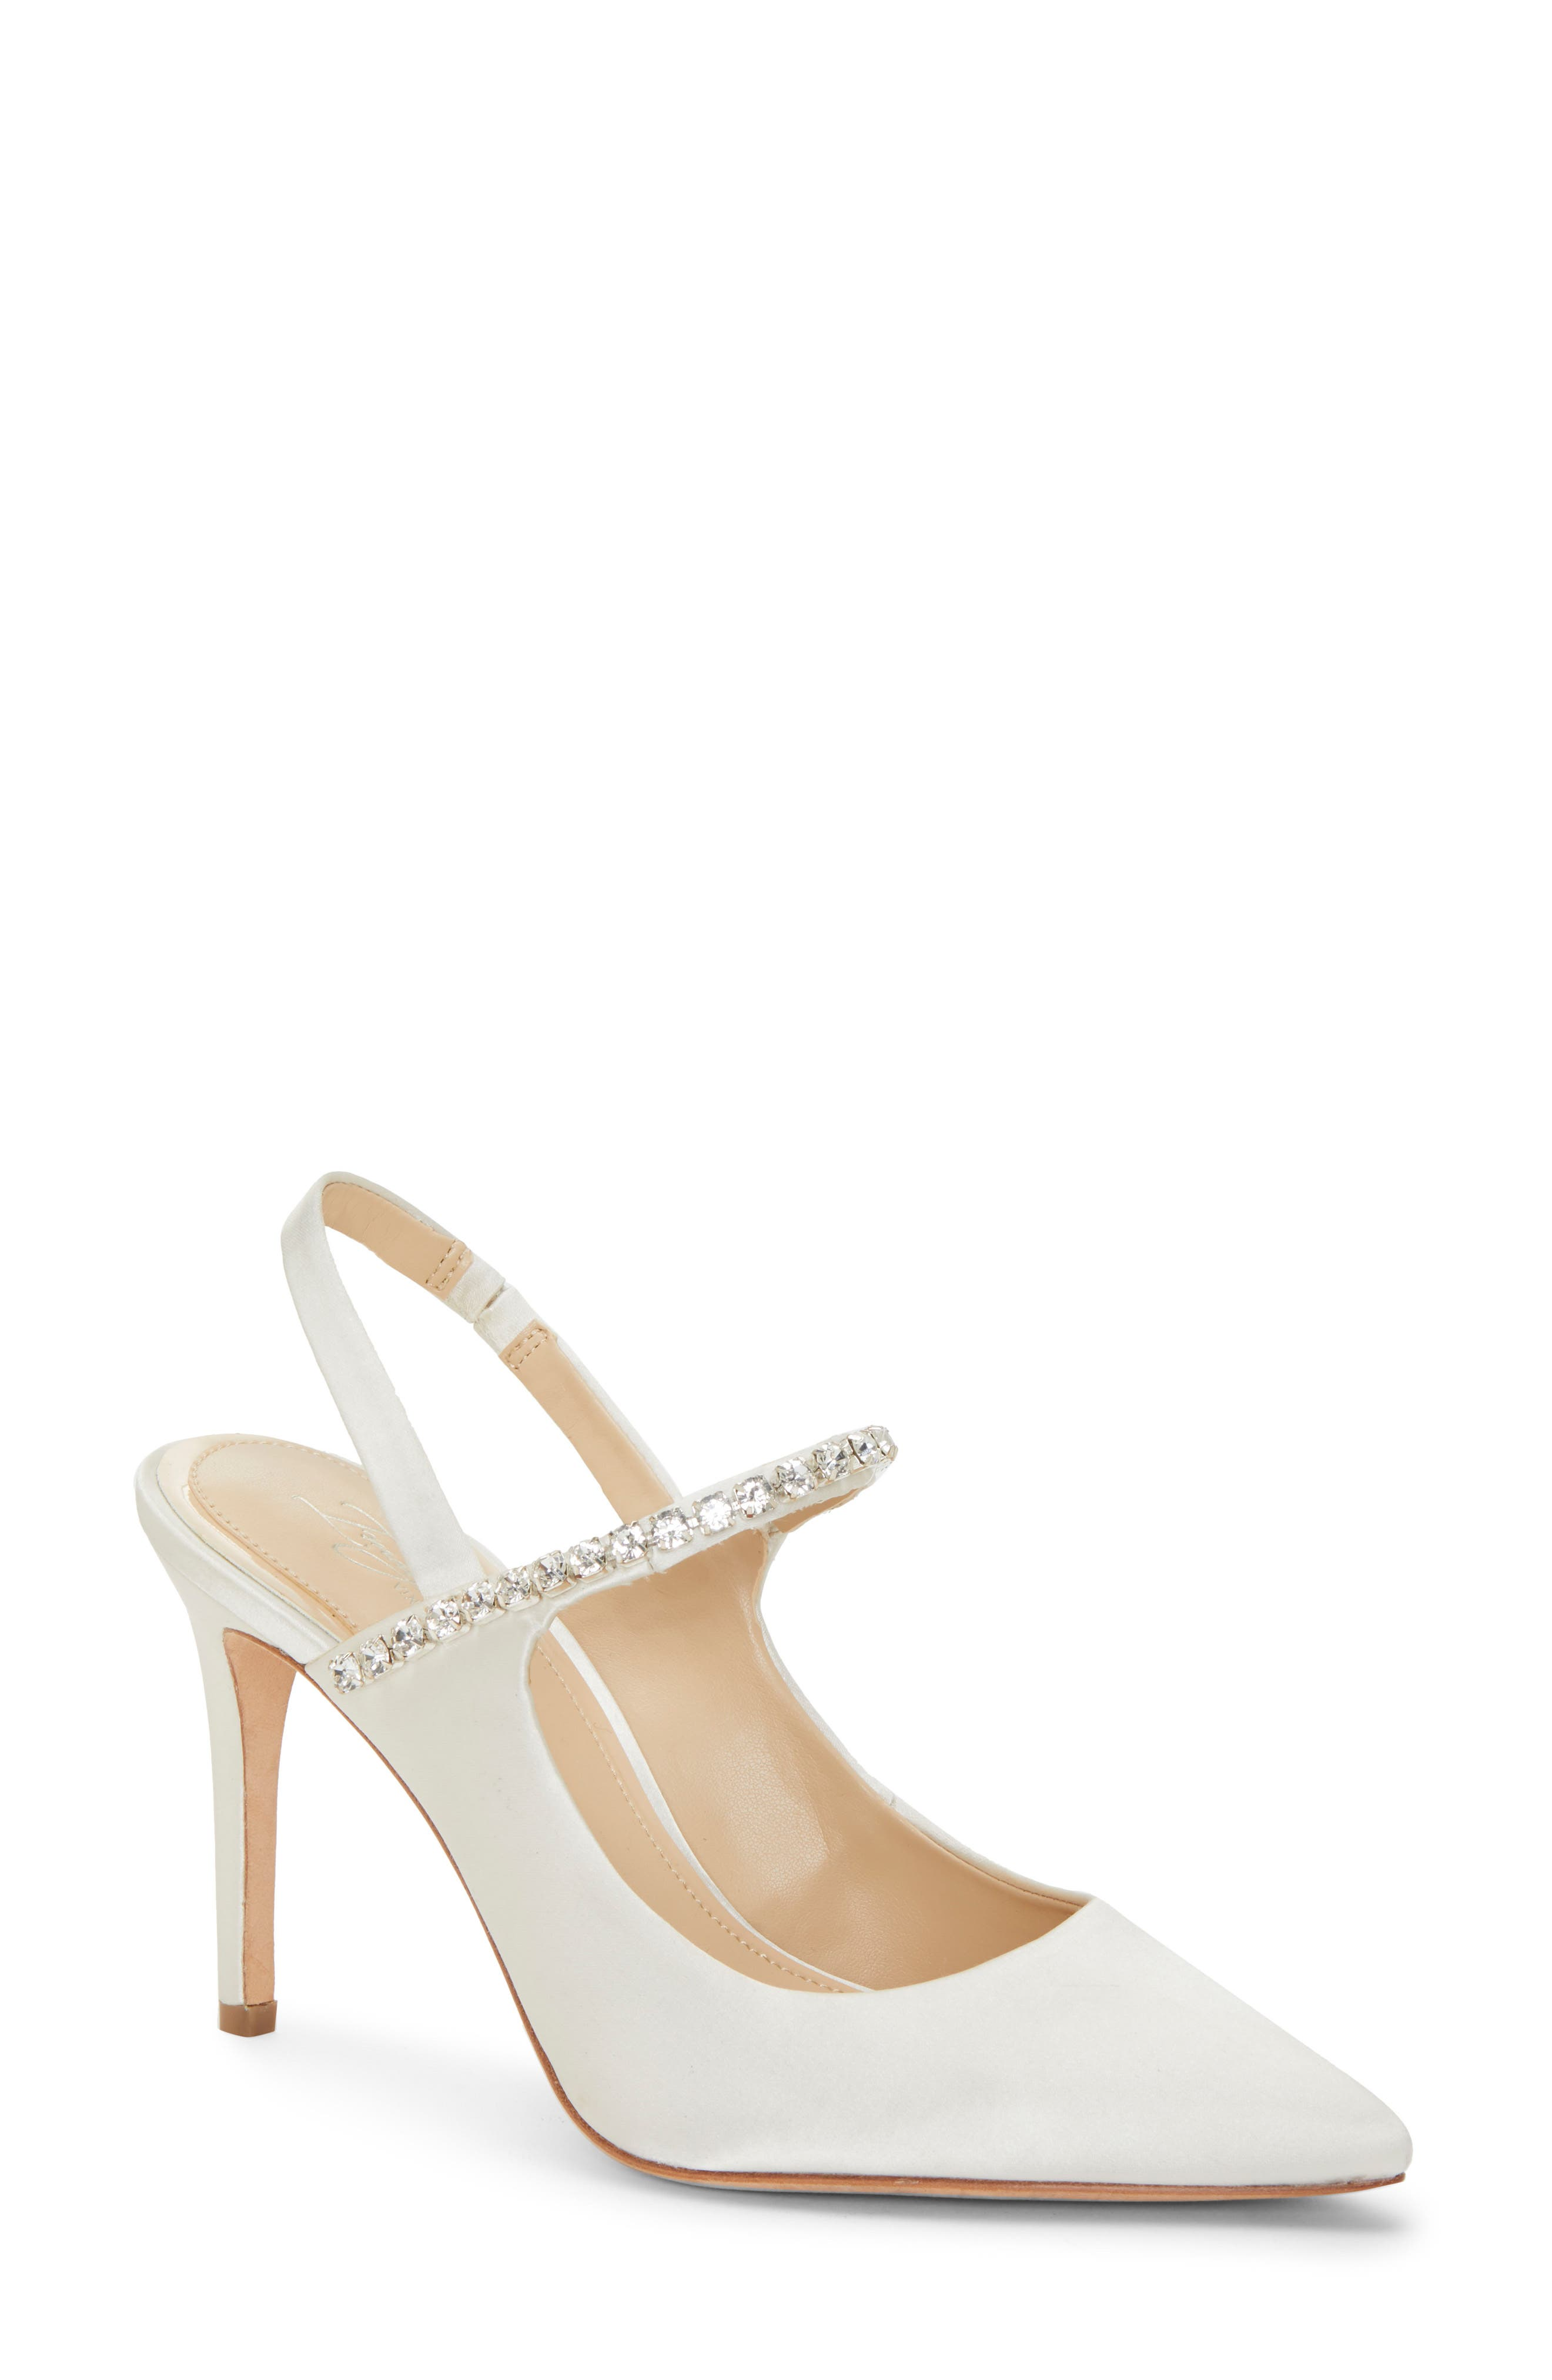 24d1ed2ab43 Women s Imagine By Vince Camuto Wedding Shoes